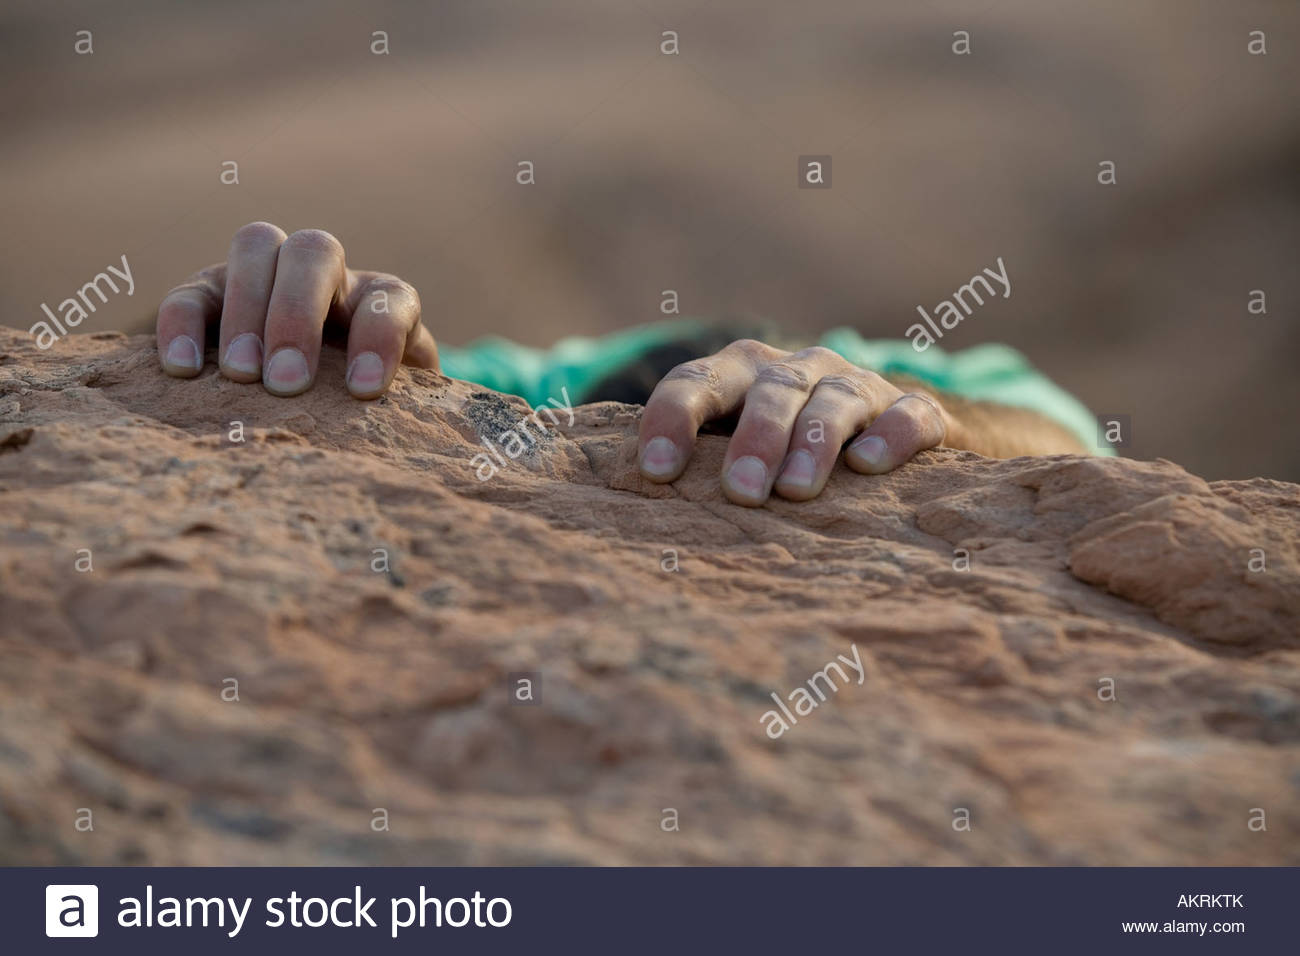 Hands of a rock climber - Stock Image